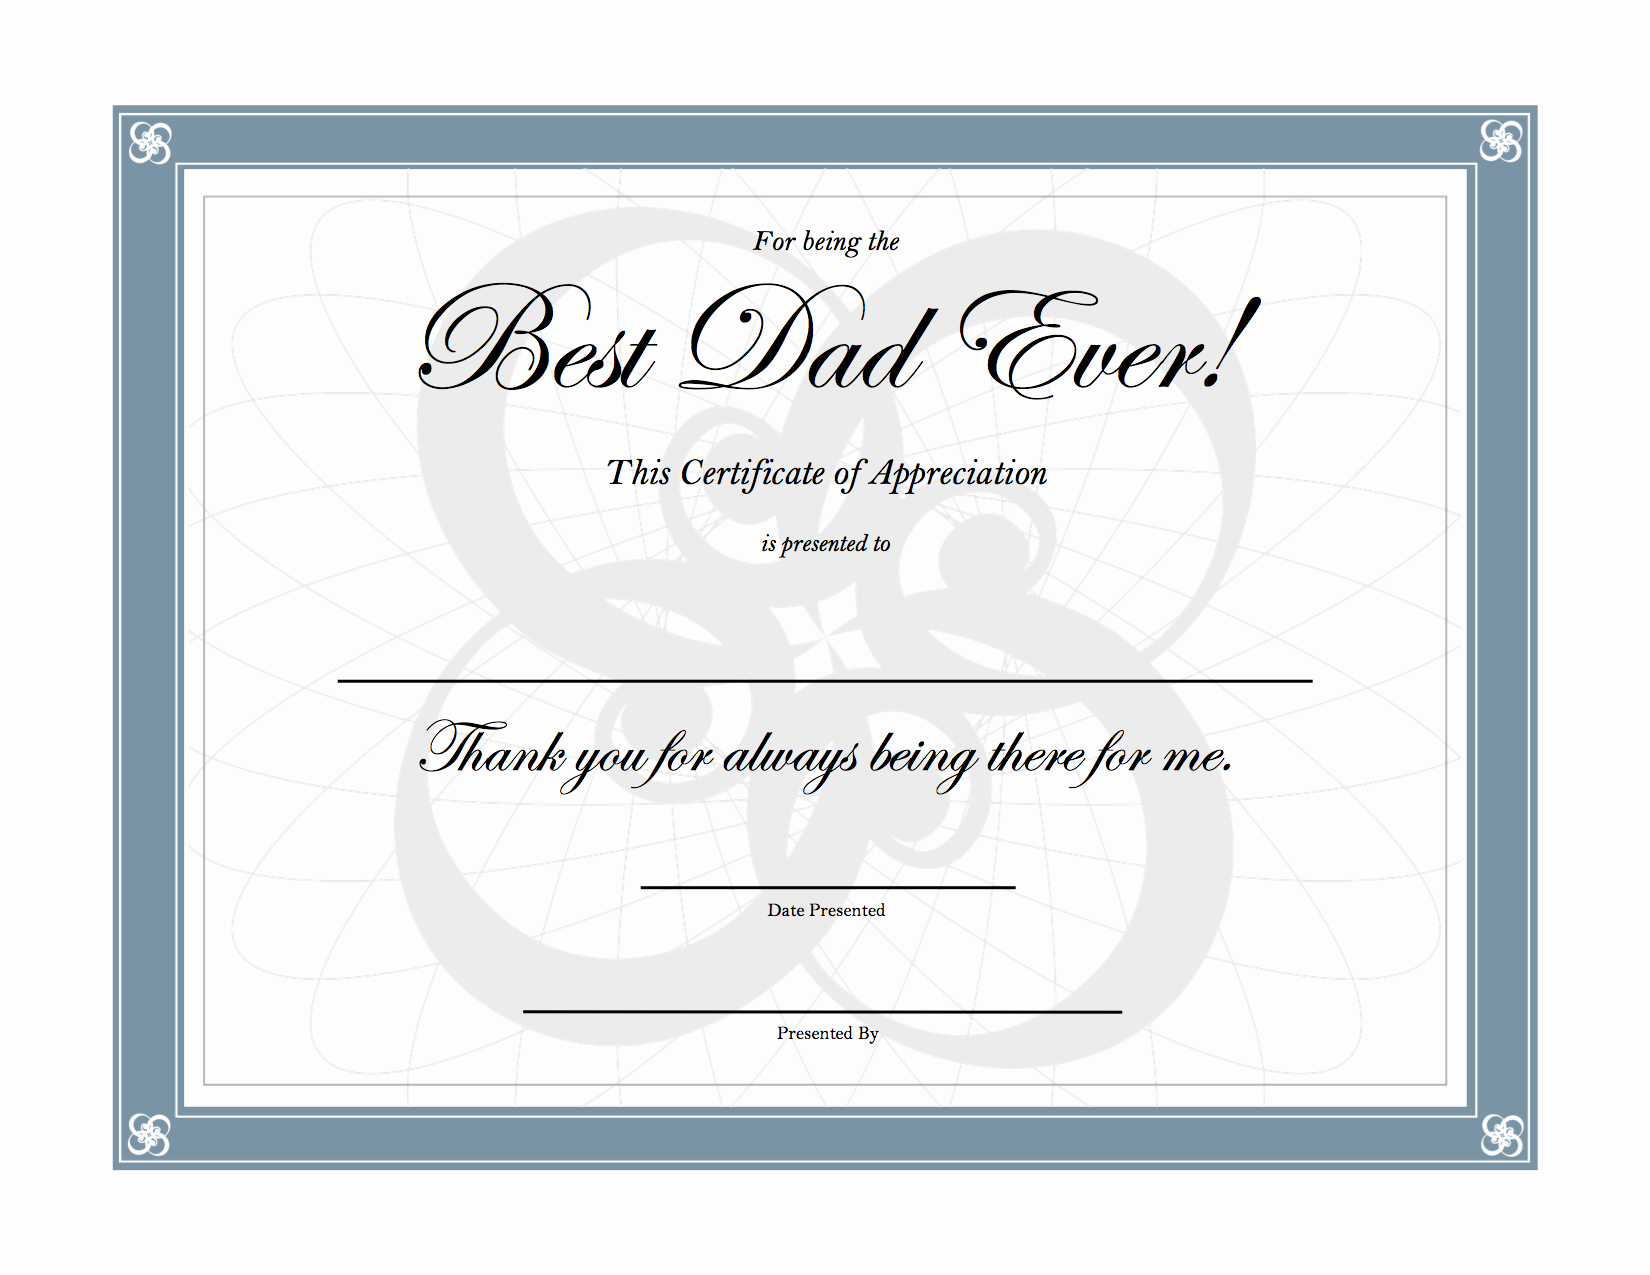 Best Dad Ever Certificate Awesome Best Dad Ever Certificate Printable